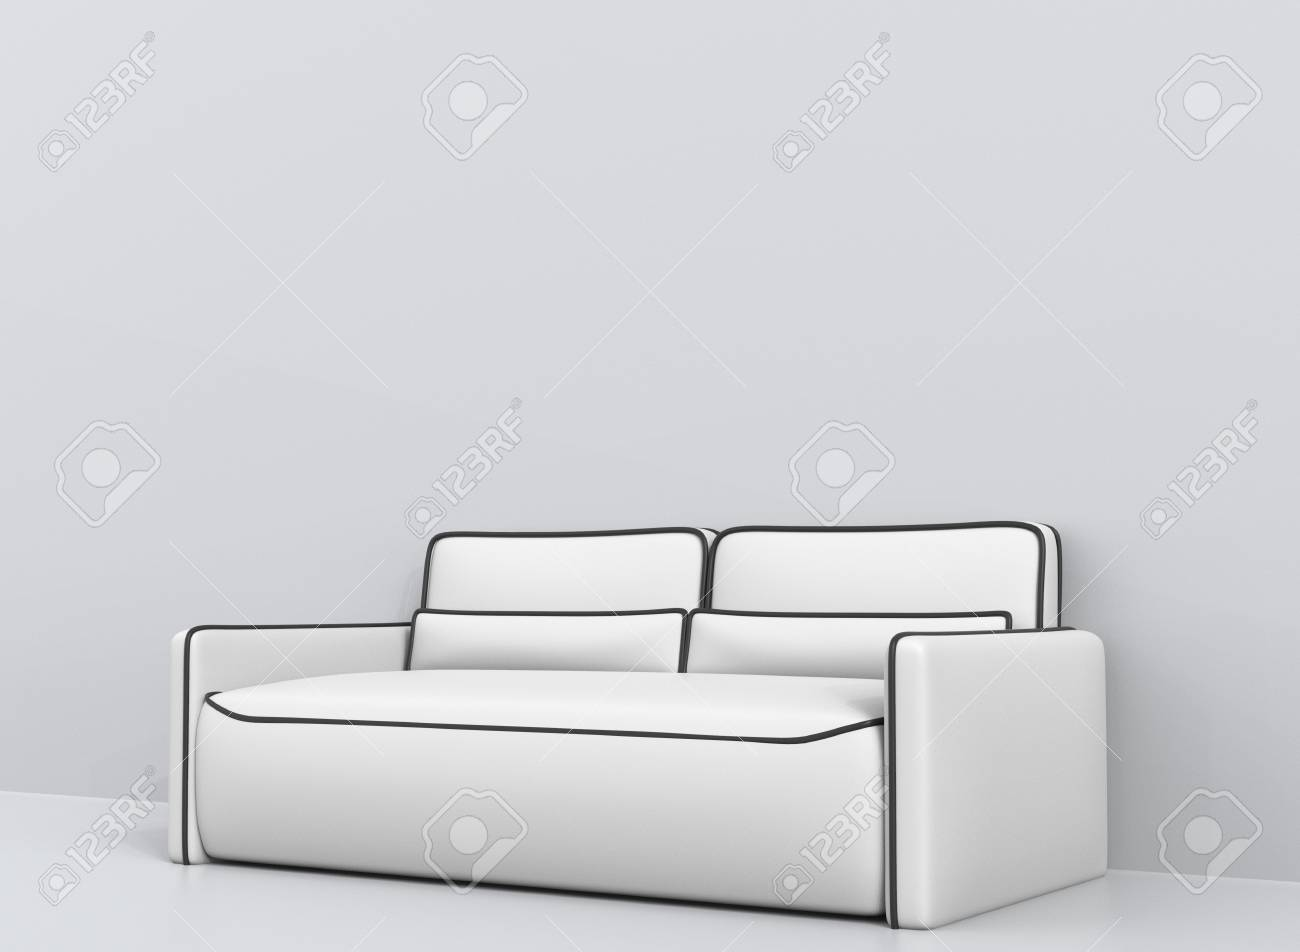 Excellent Modern White Leather Sofa With Black Outlines Angle Shot Caraccident5 Cool Chair Designs And Ideas Caraccident5Info